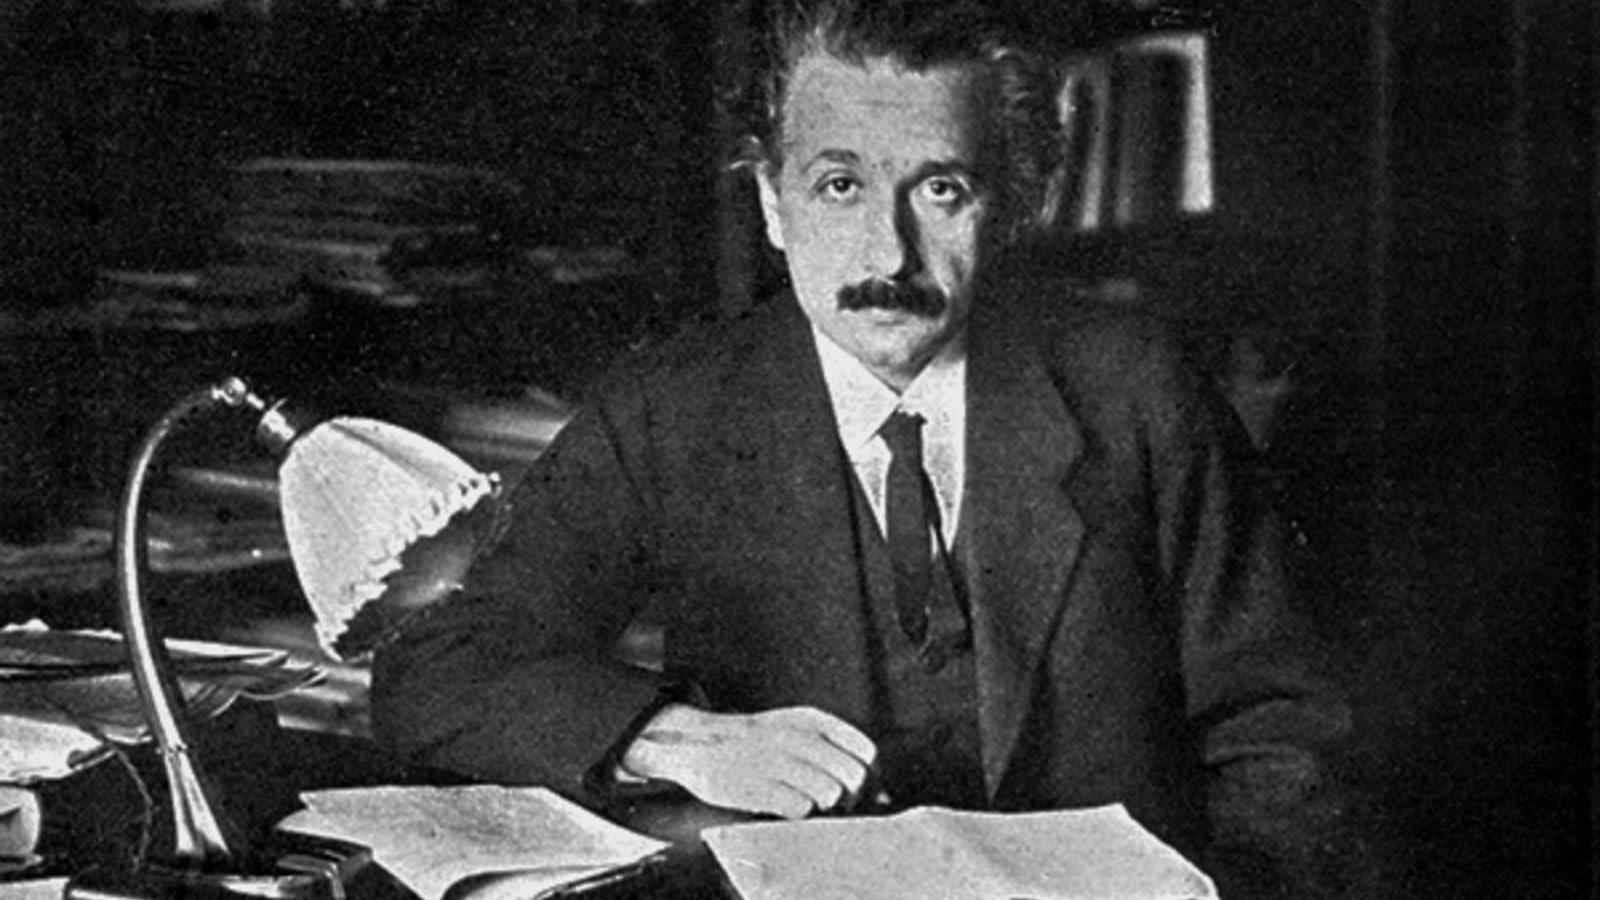 Einstein papers go digital | symmetry magazine